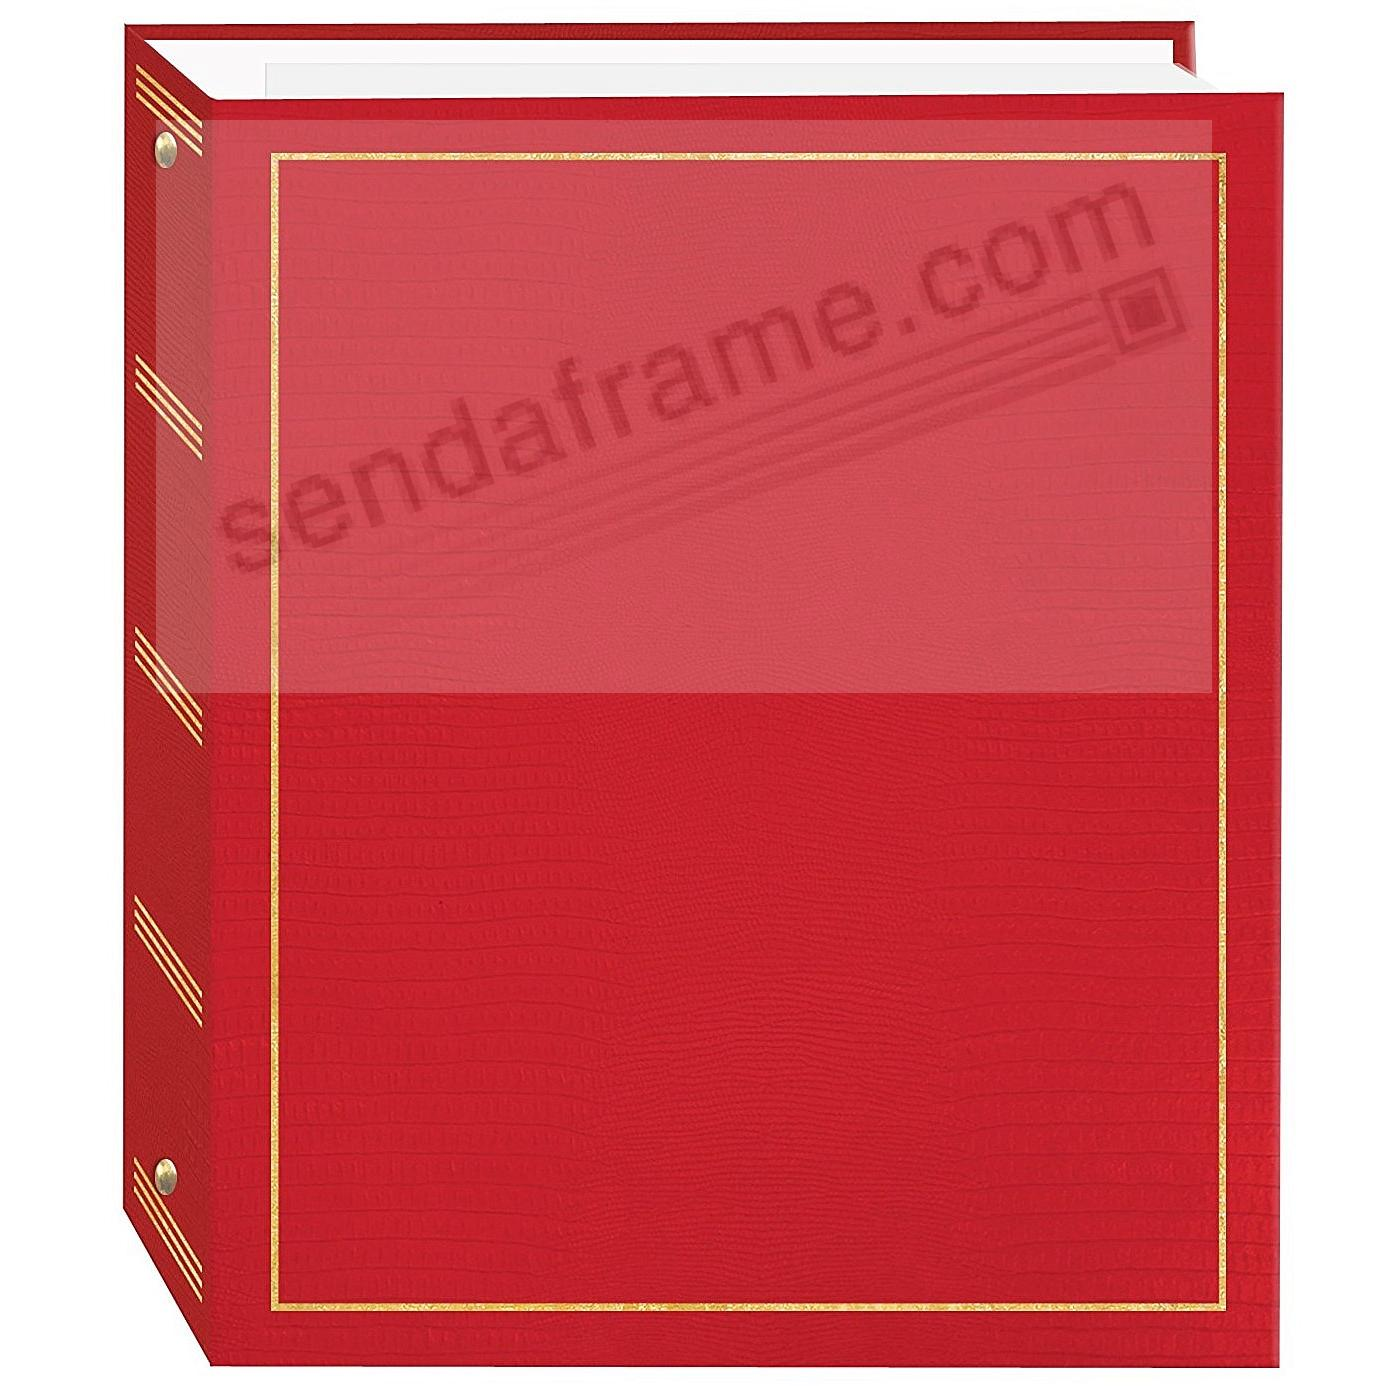 RED 3-ring album<br>w/EZ-stick magnetic pages